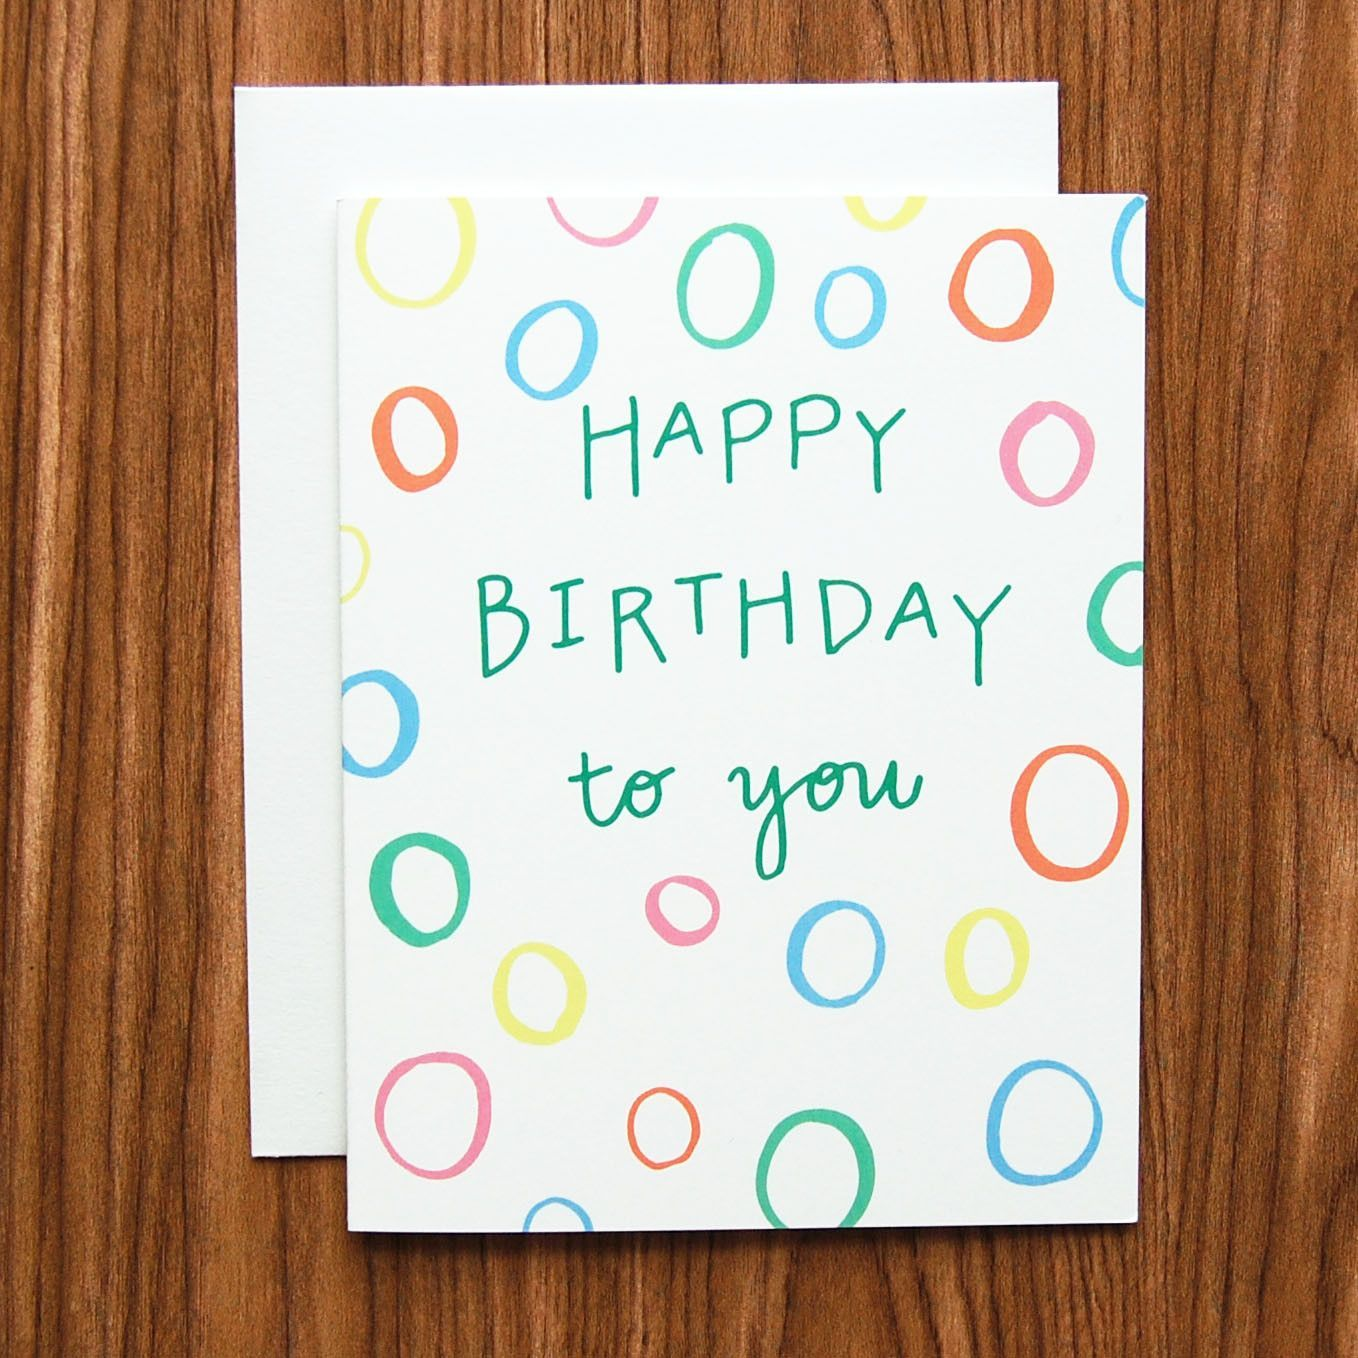 Wish A Friend Or Family Member Happy Birthday With This Card